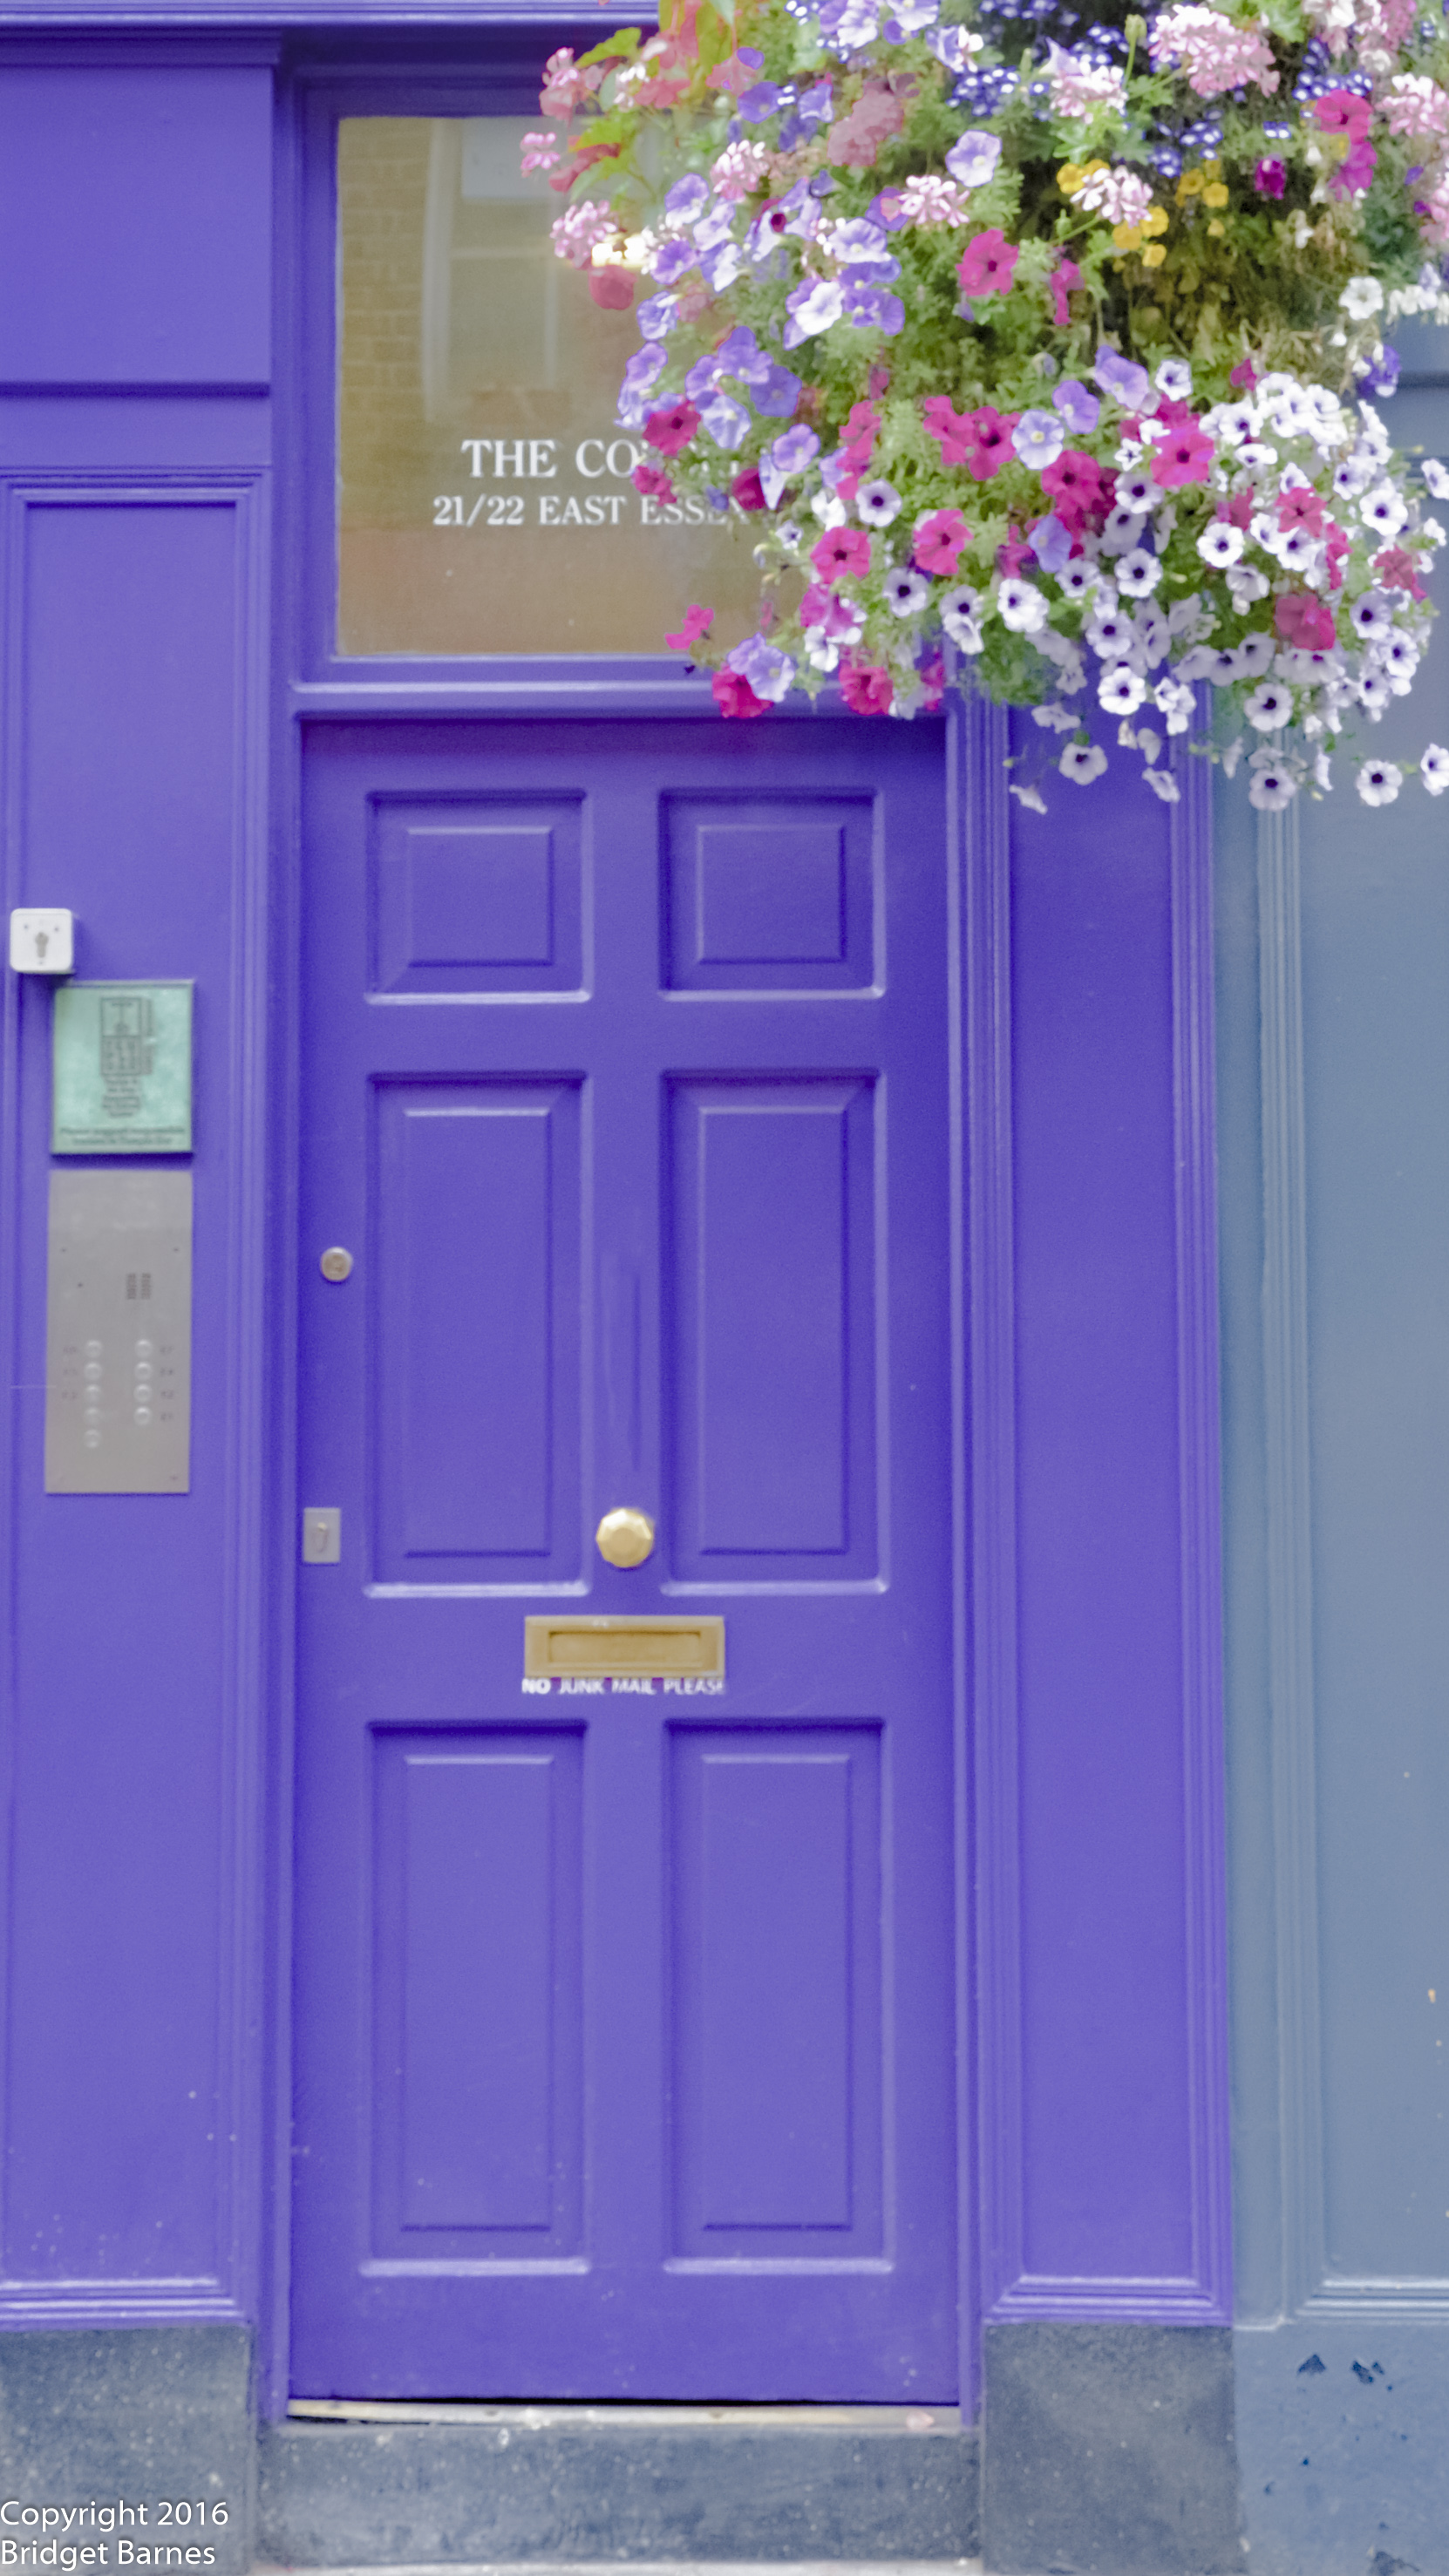 One of the many colorful doors that you will find in Dublin